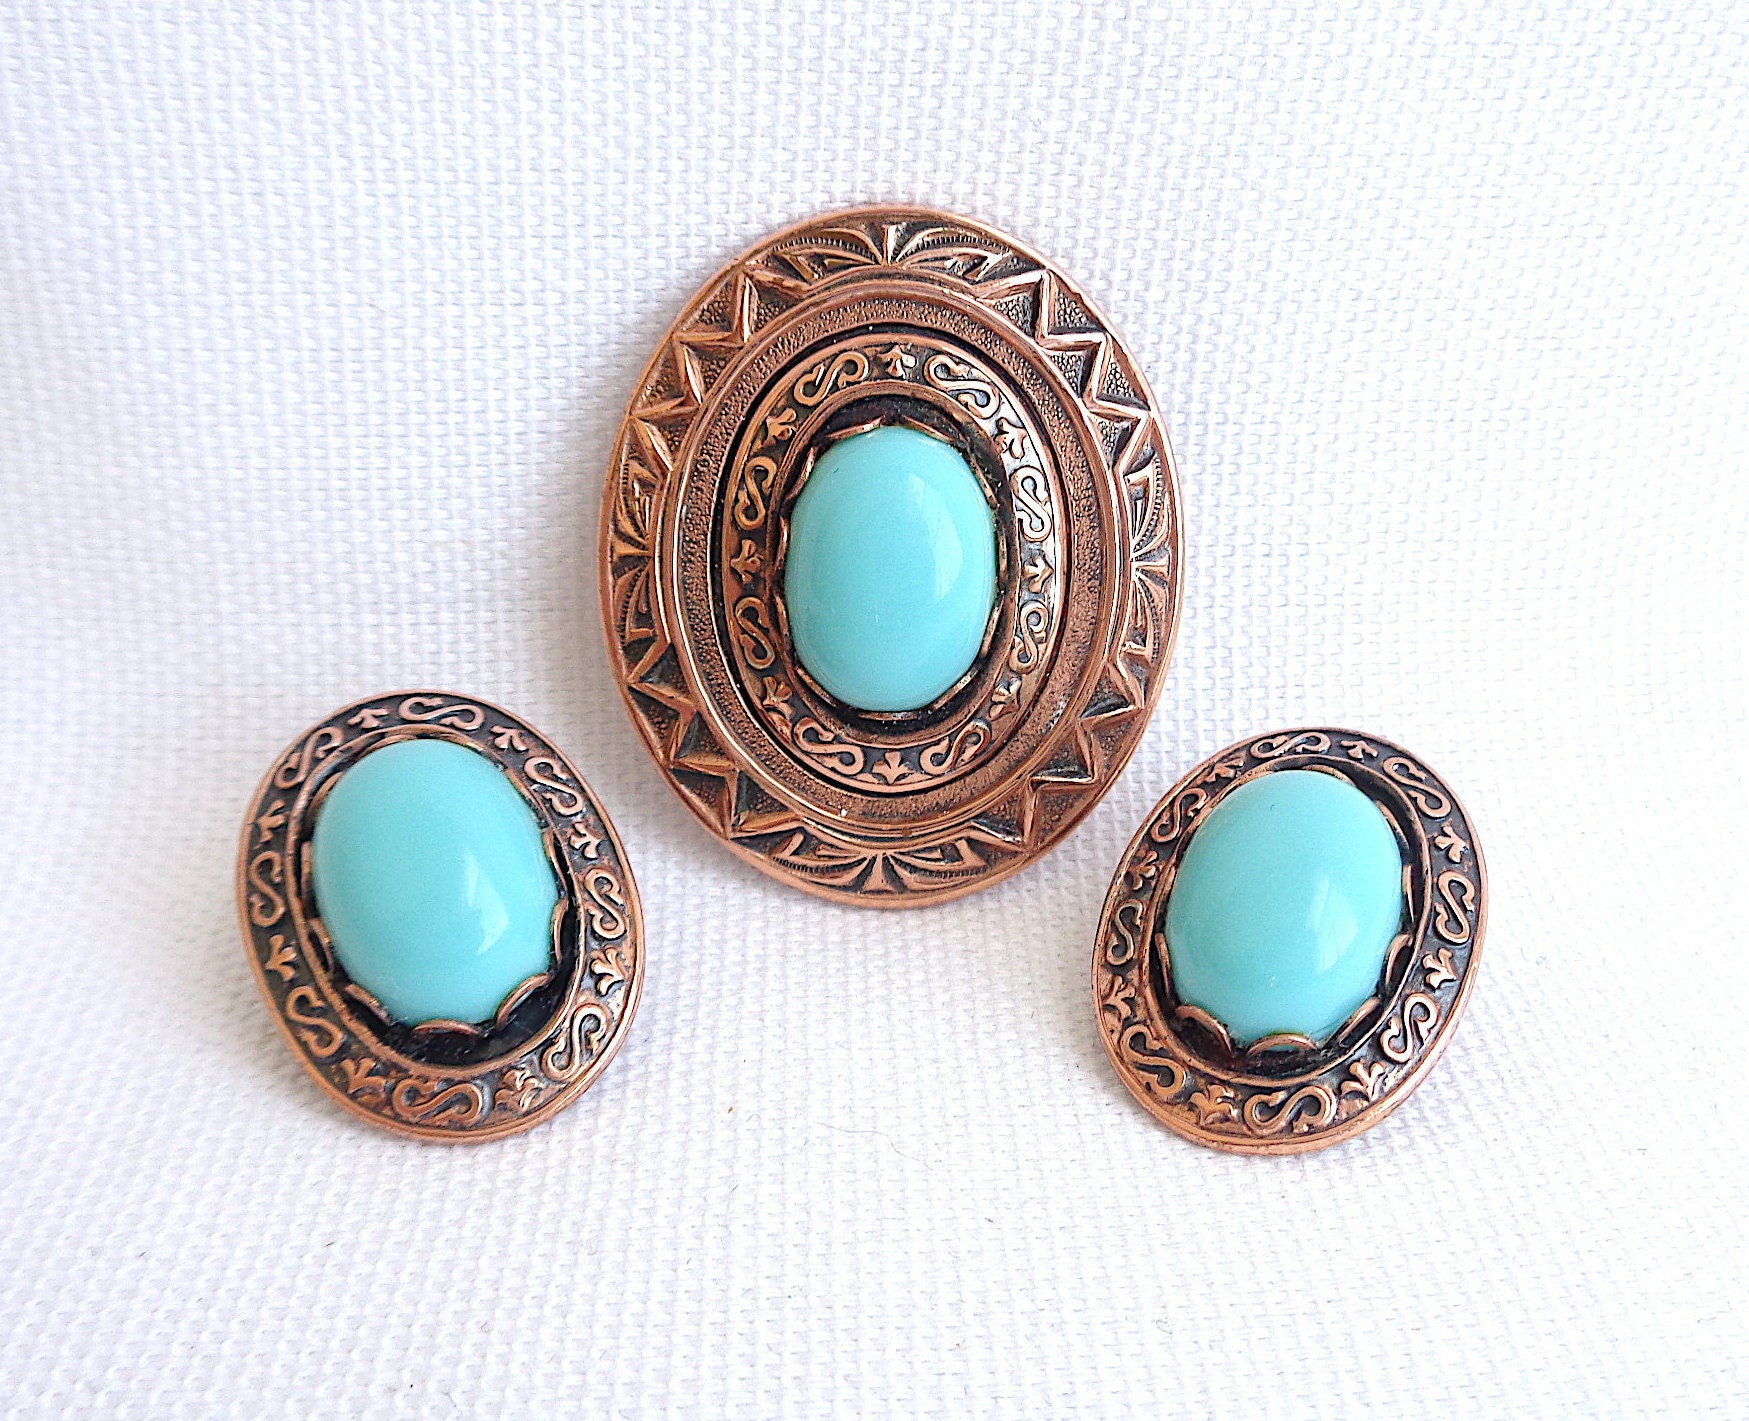 Blue Cabachon Two Tone Metal Vintage Costume Jewelry Clipback Earrings